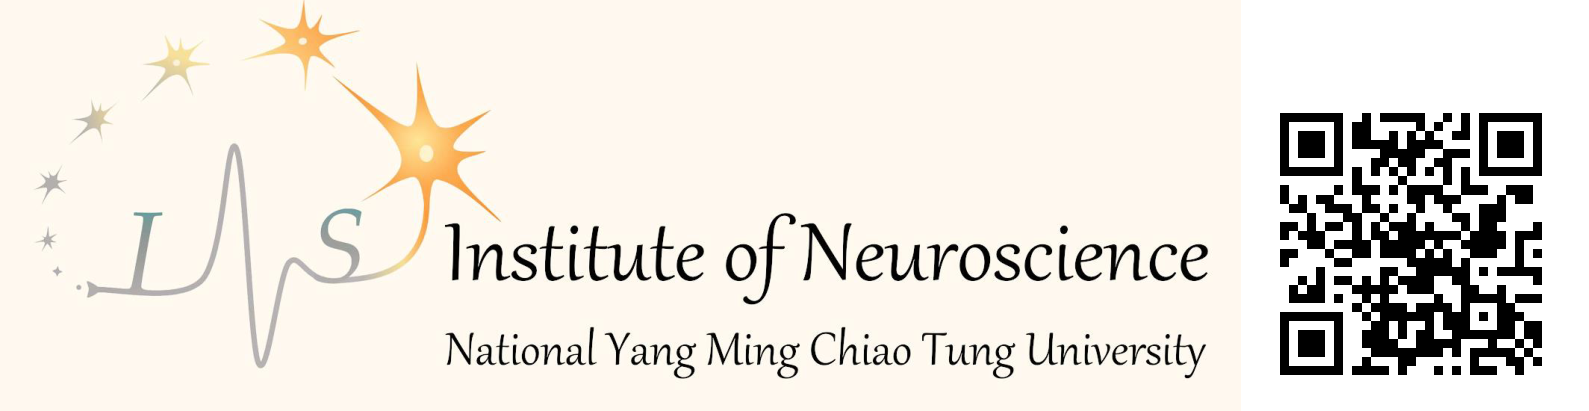 Institute of Neuroscience, NYCU